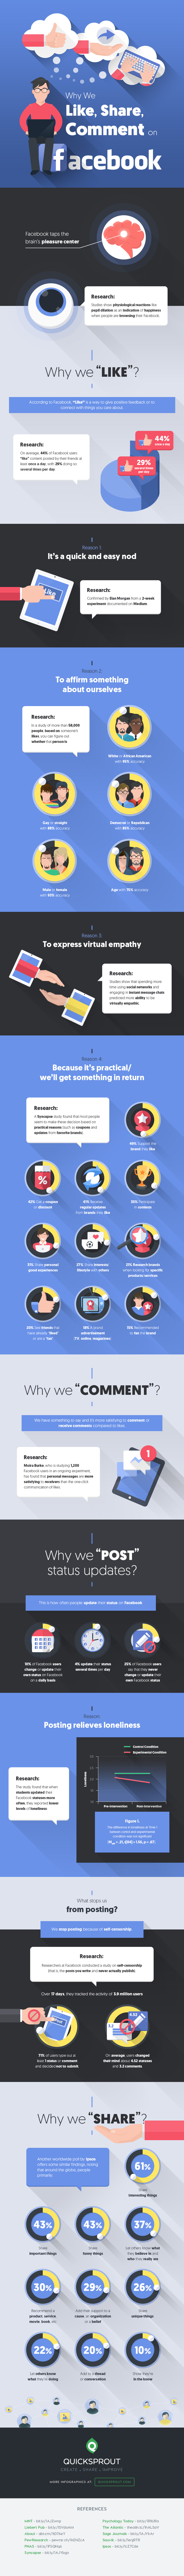 What Triggers Comments, Shares, and Likes on Facebook